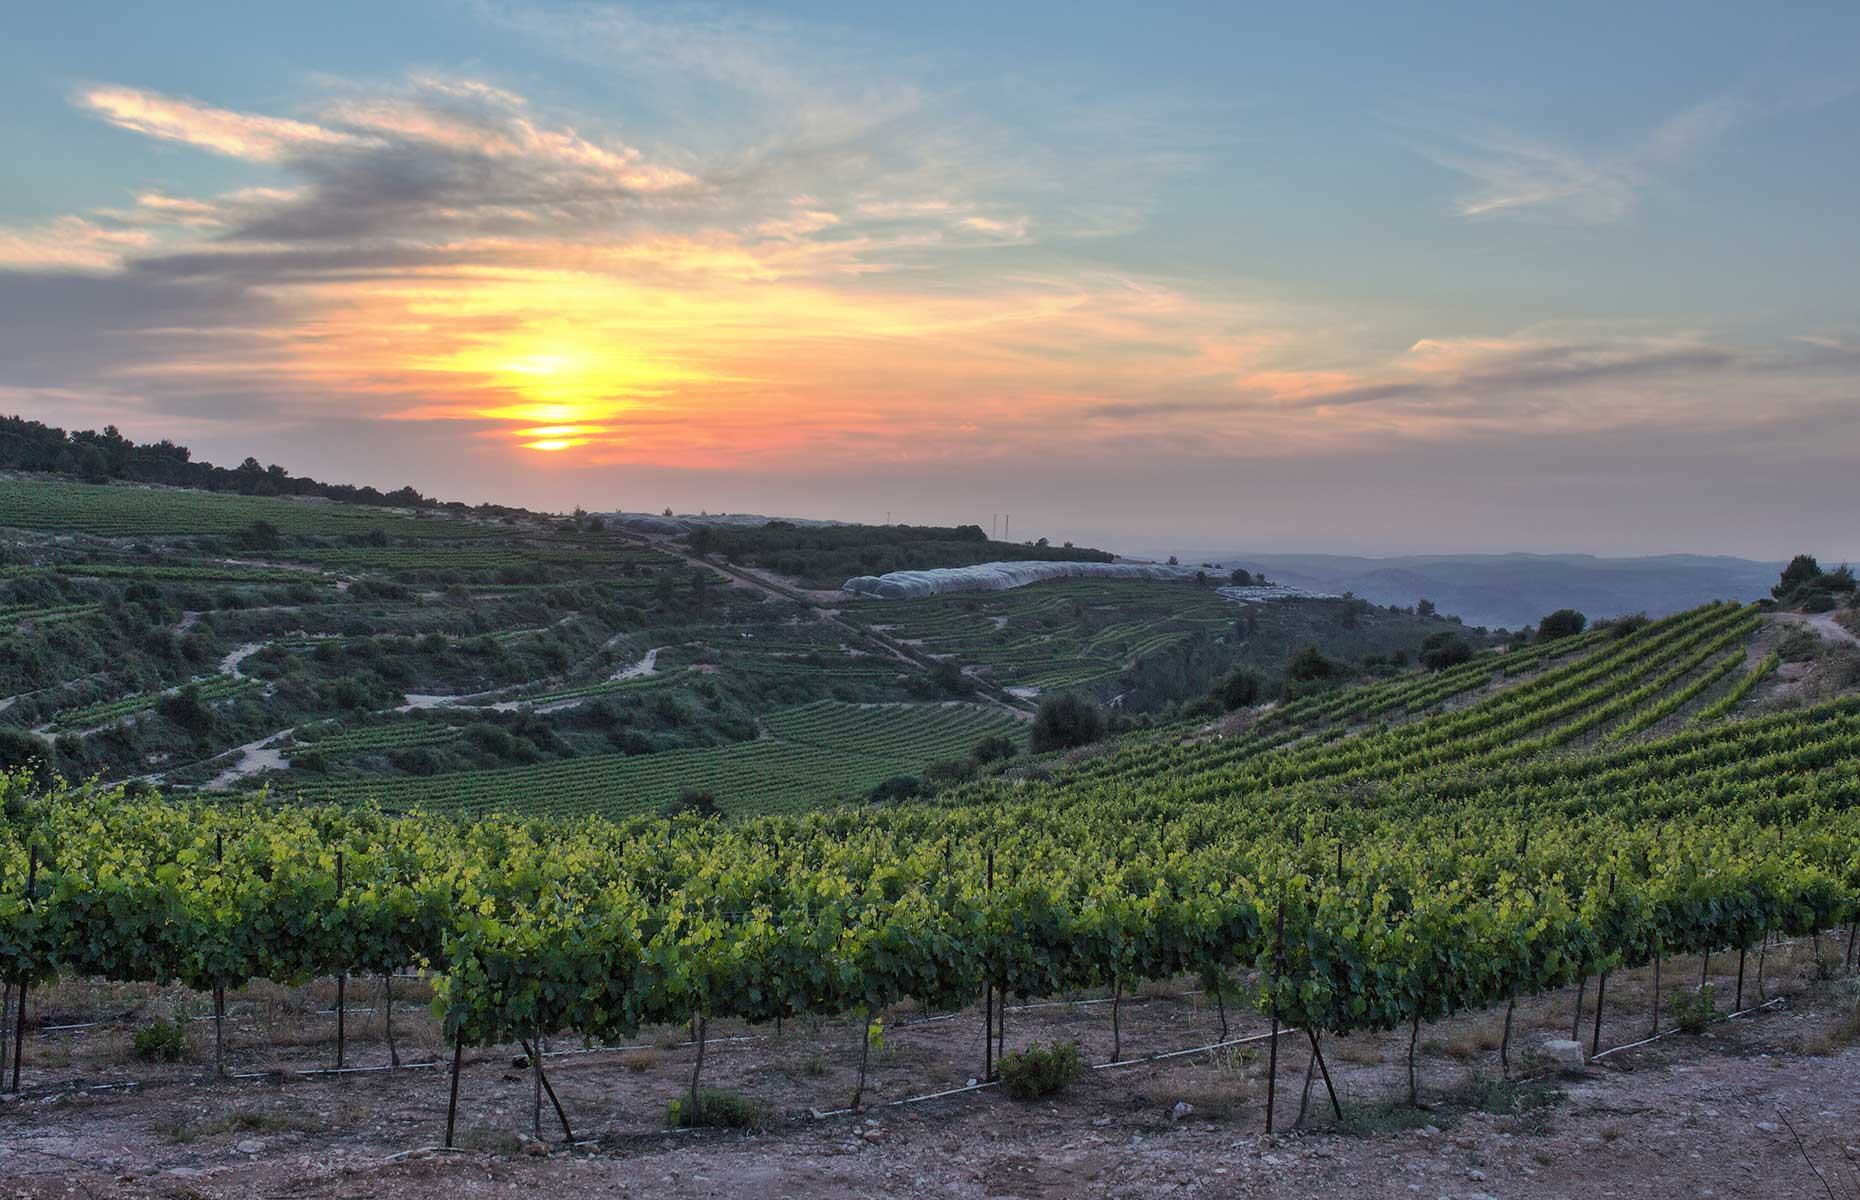 Israel-vineyard